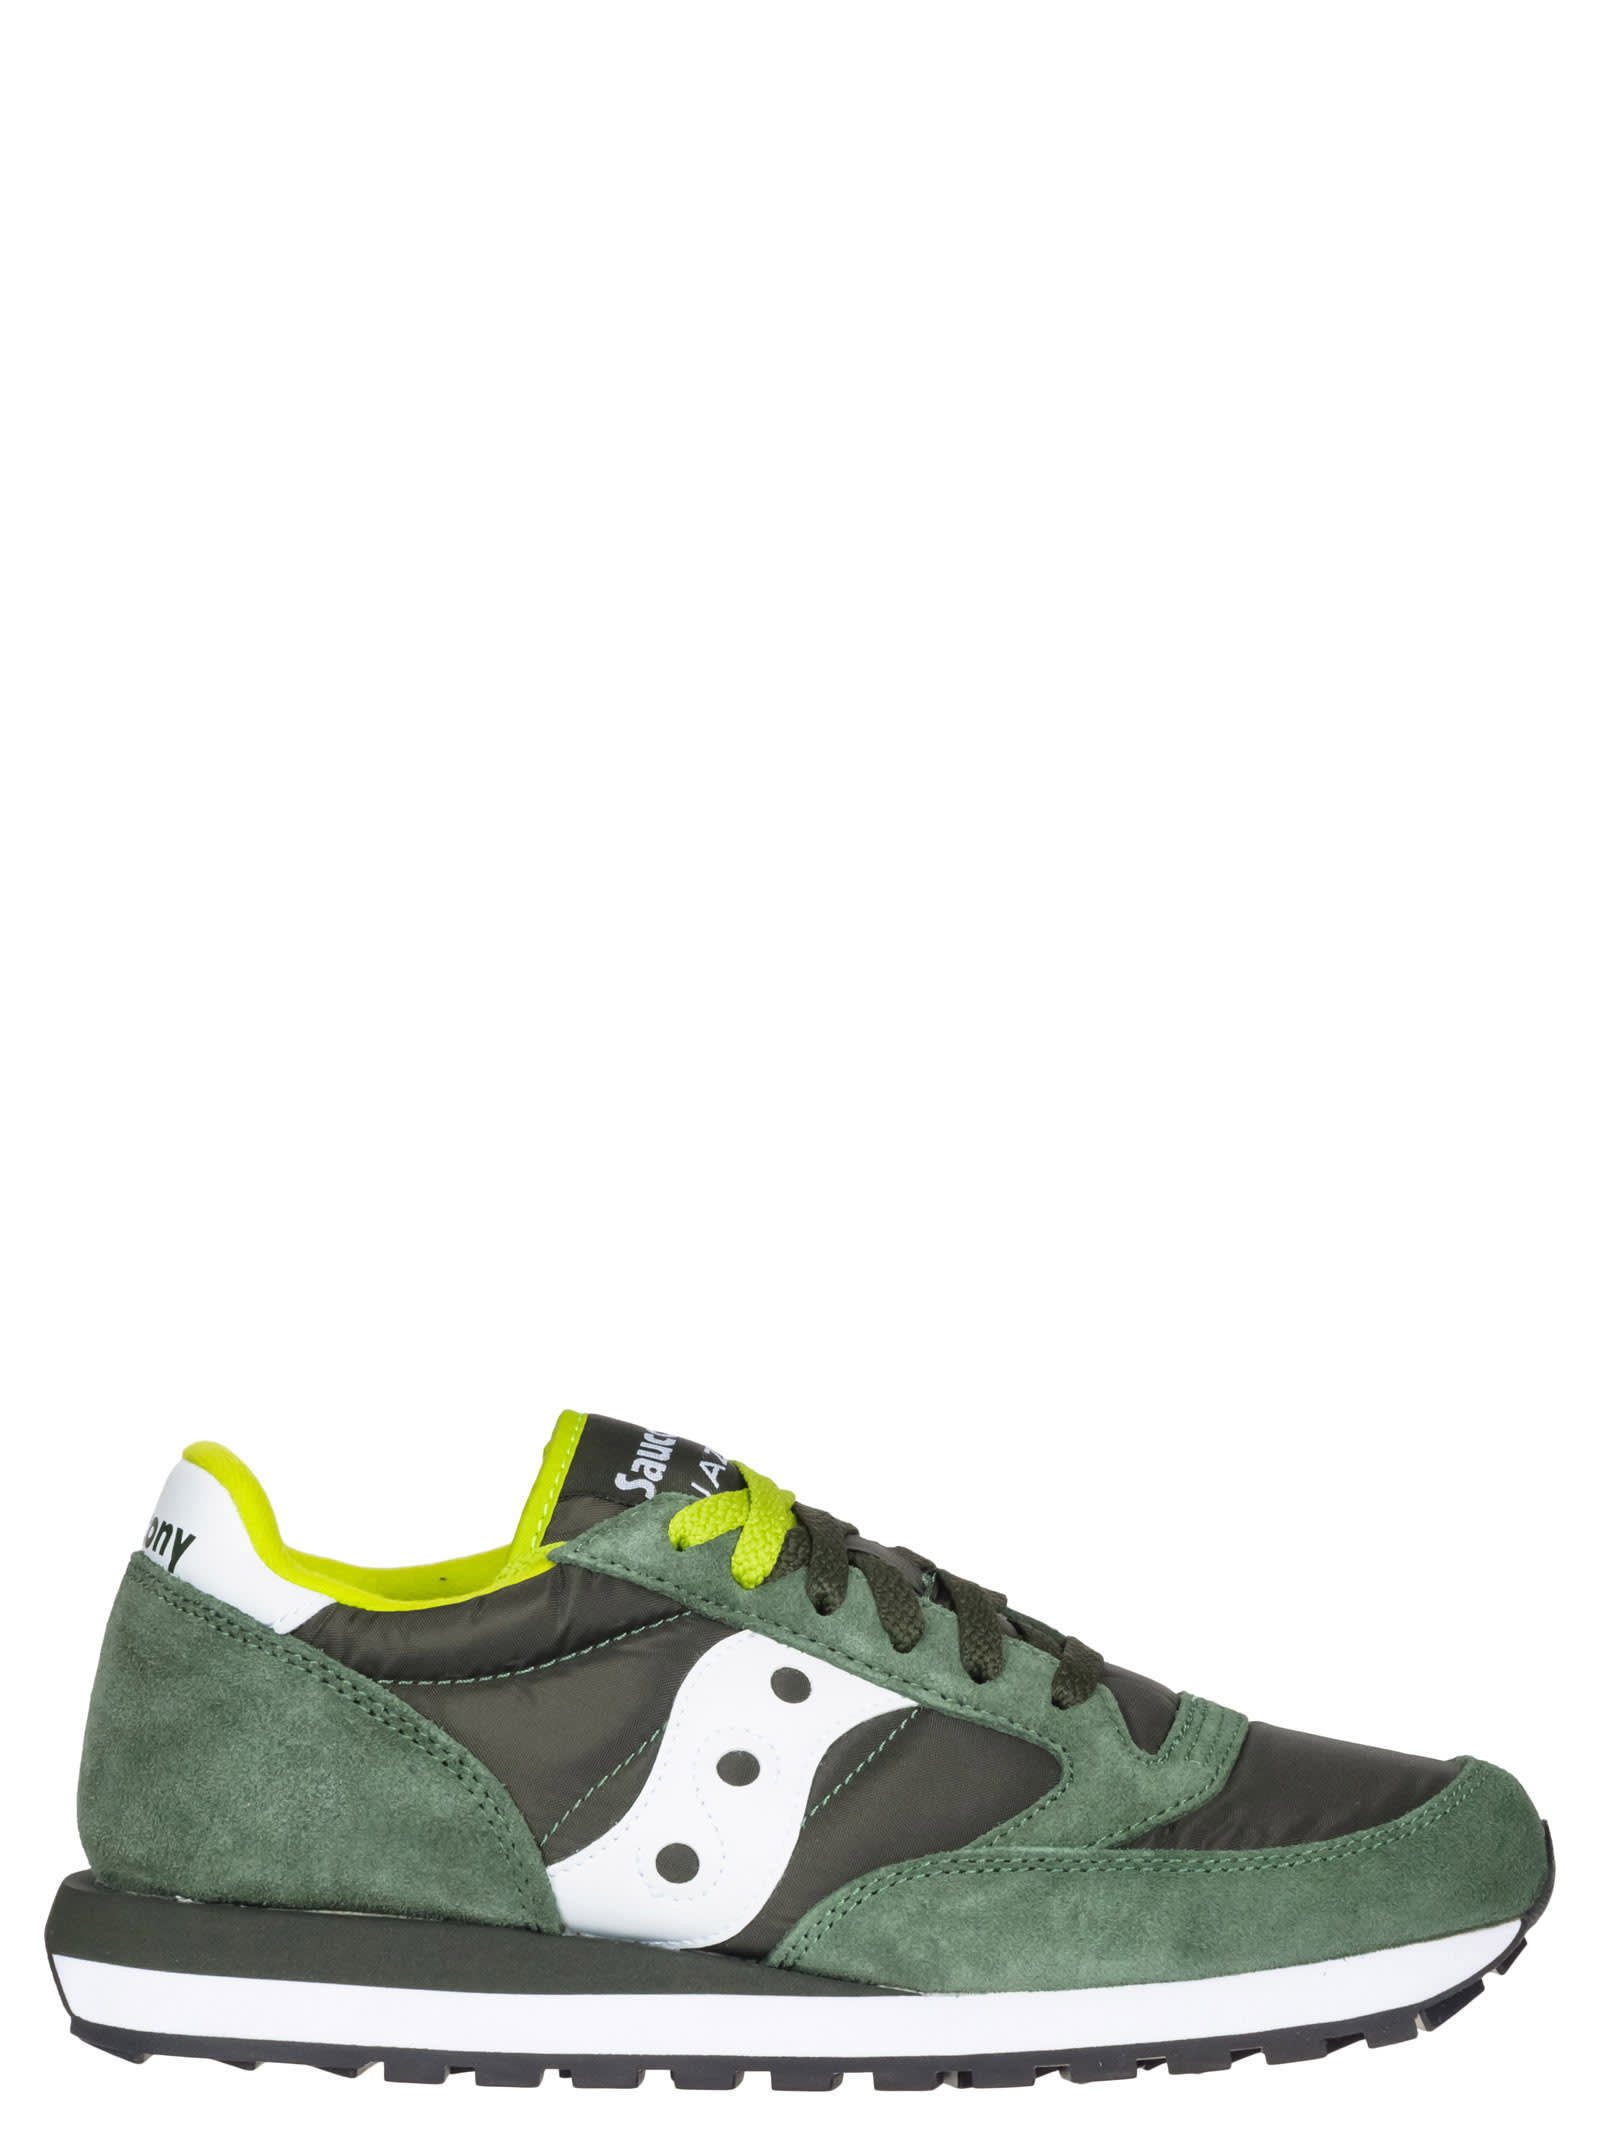 100% authentic b9725 a88a7 Saucony Jazz Sneakers